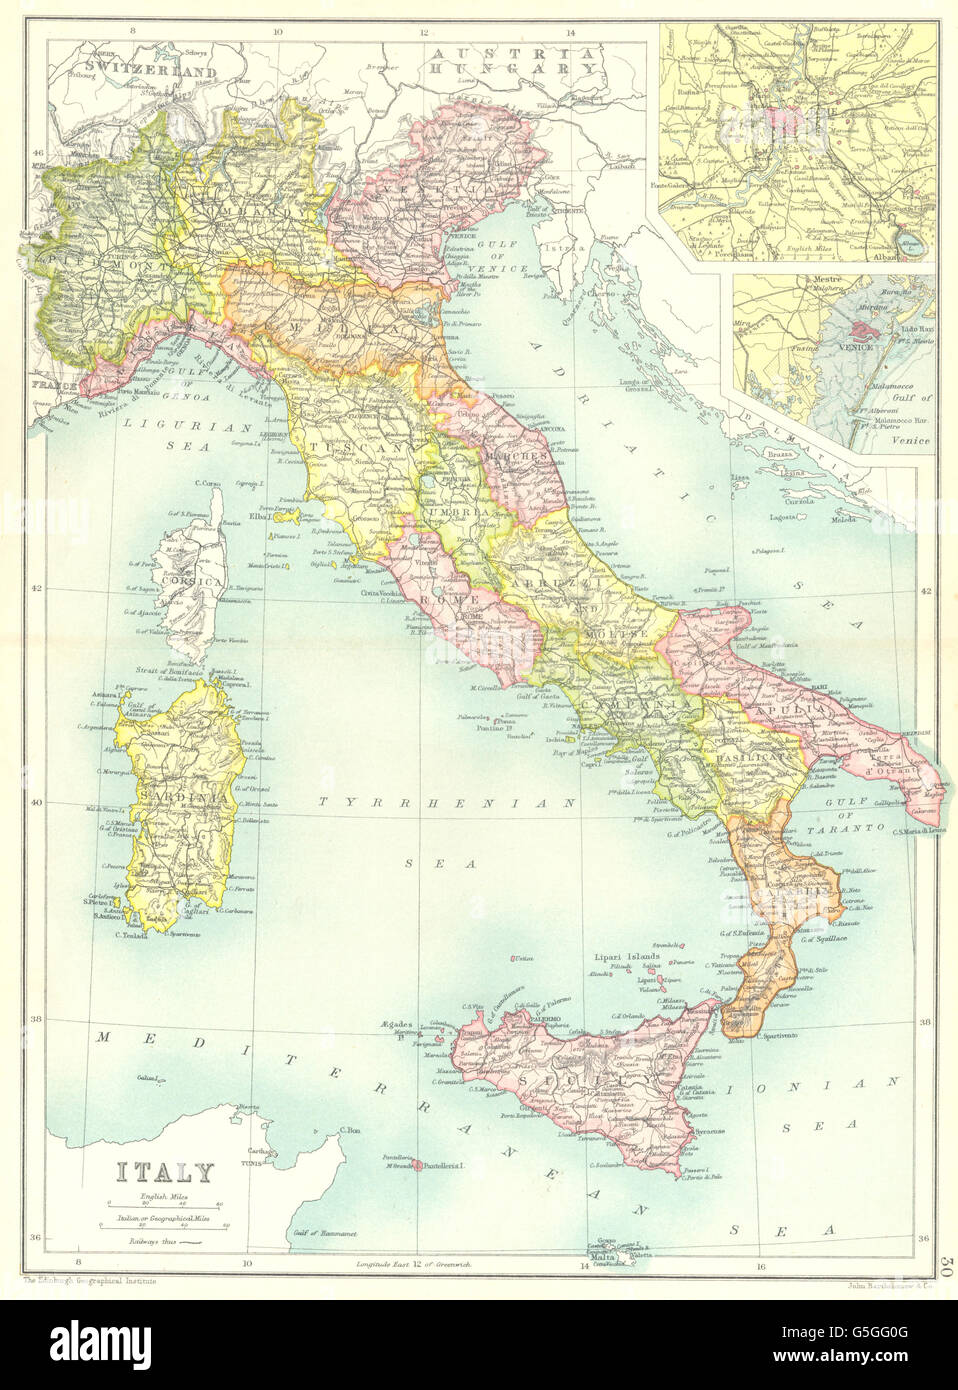 Maps of venice stock photos maps of venice stock images alamy italy showing regionsset maps of rome venice cassells 1909 gumiabroncs Gallery